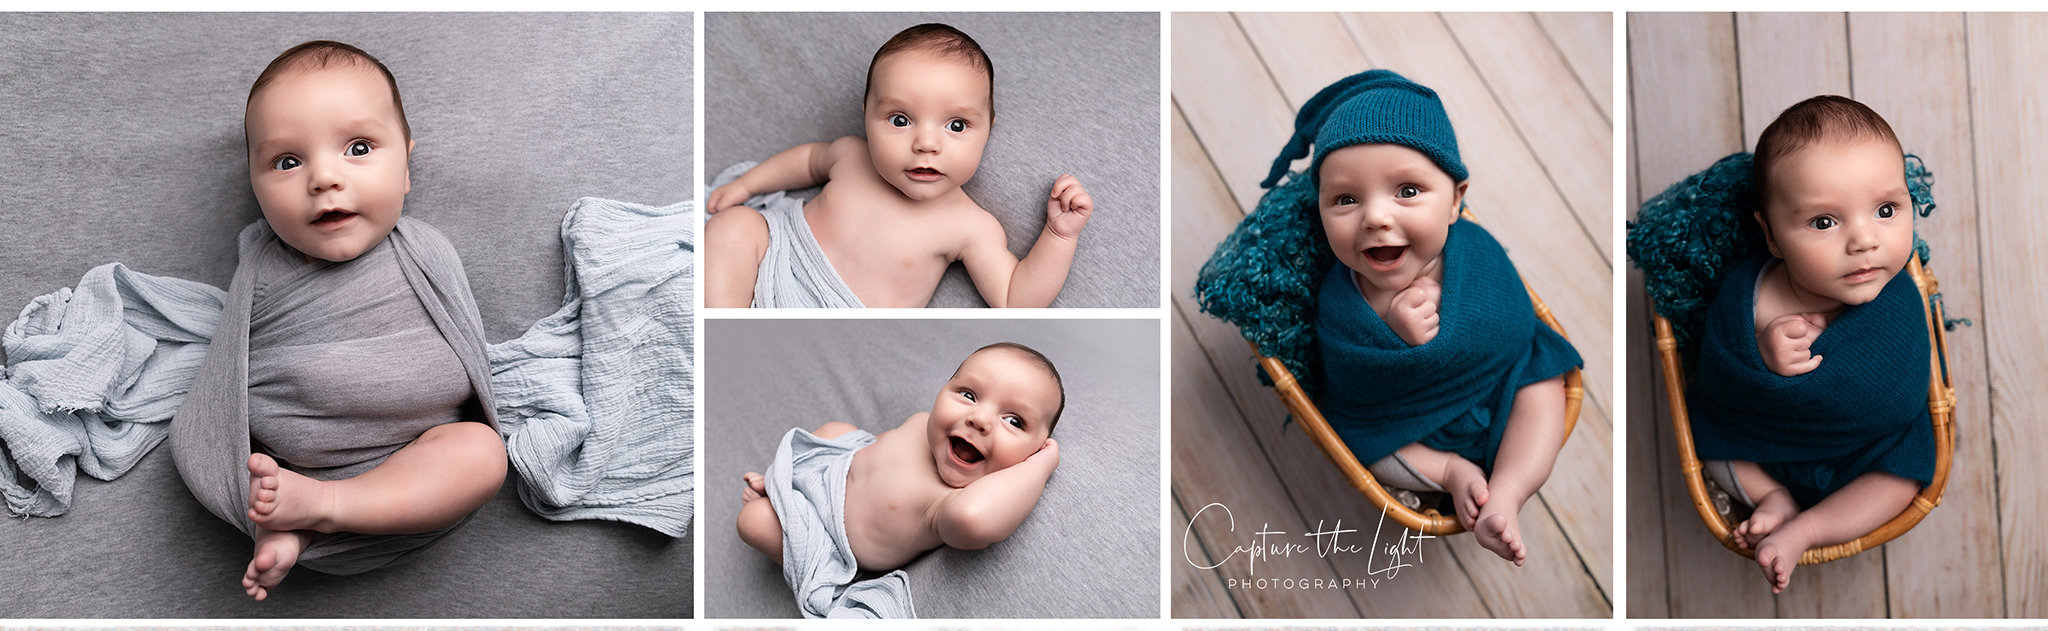 baby boy in blue and grey in newborn photography Northampton and Milton Keynes mini sessions good value